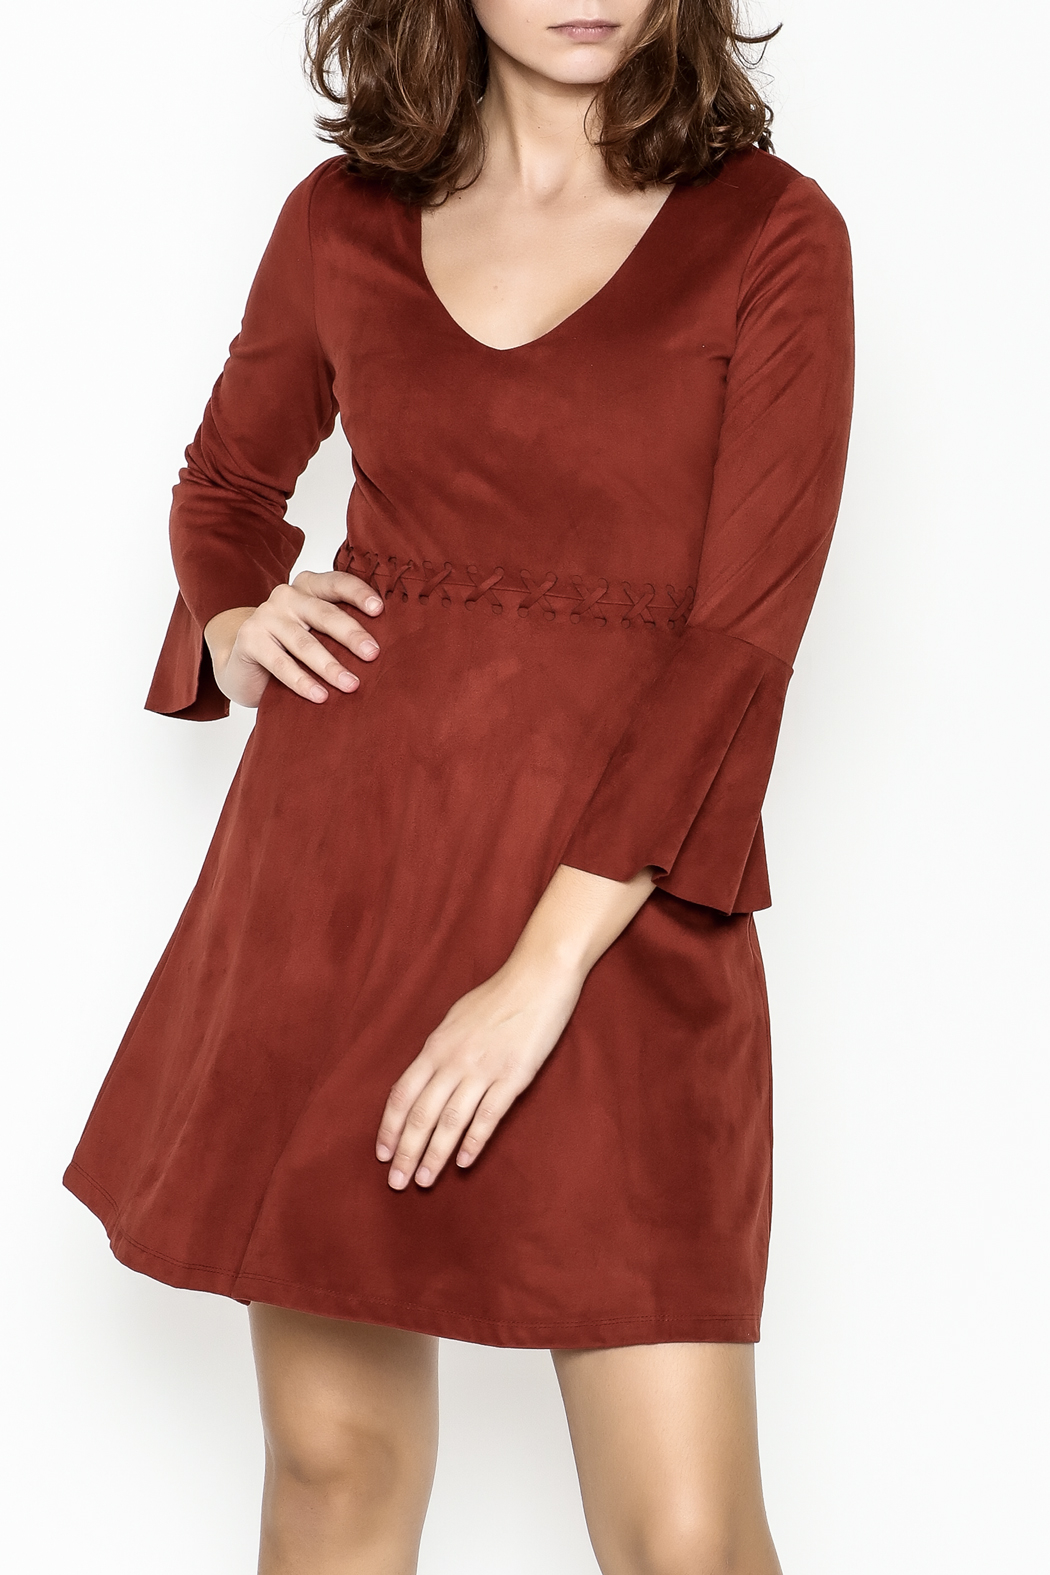 Black Swan Faux Suede Rust Dress - Main Image